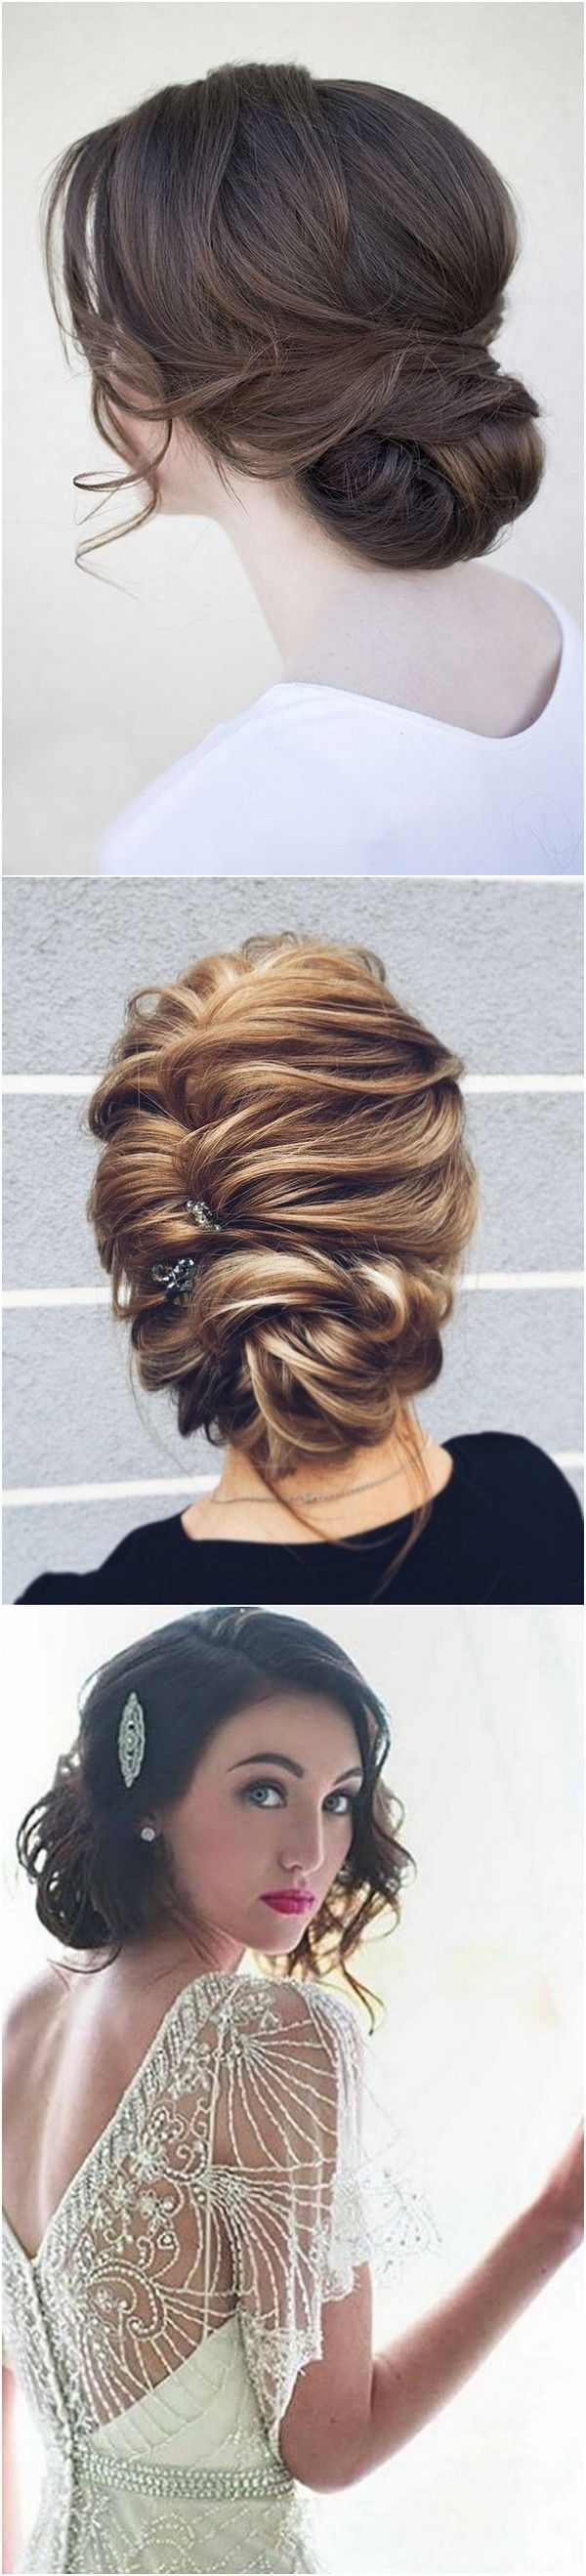 Vintage wedding hairstyles wedding hairstyles pinterest